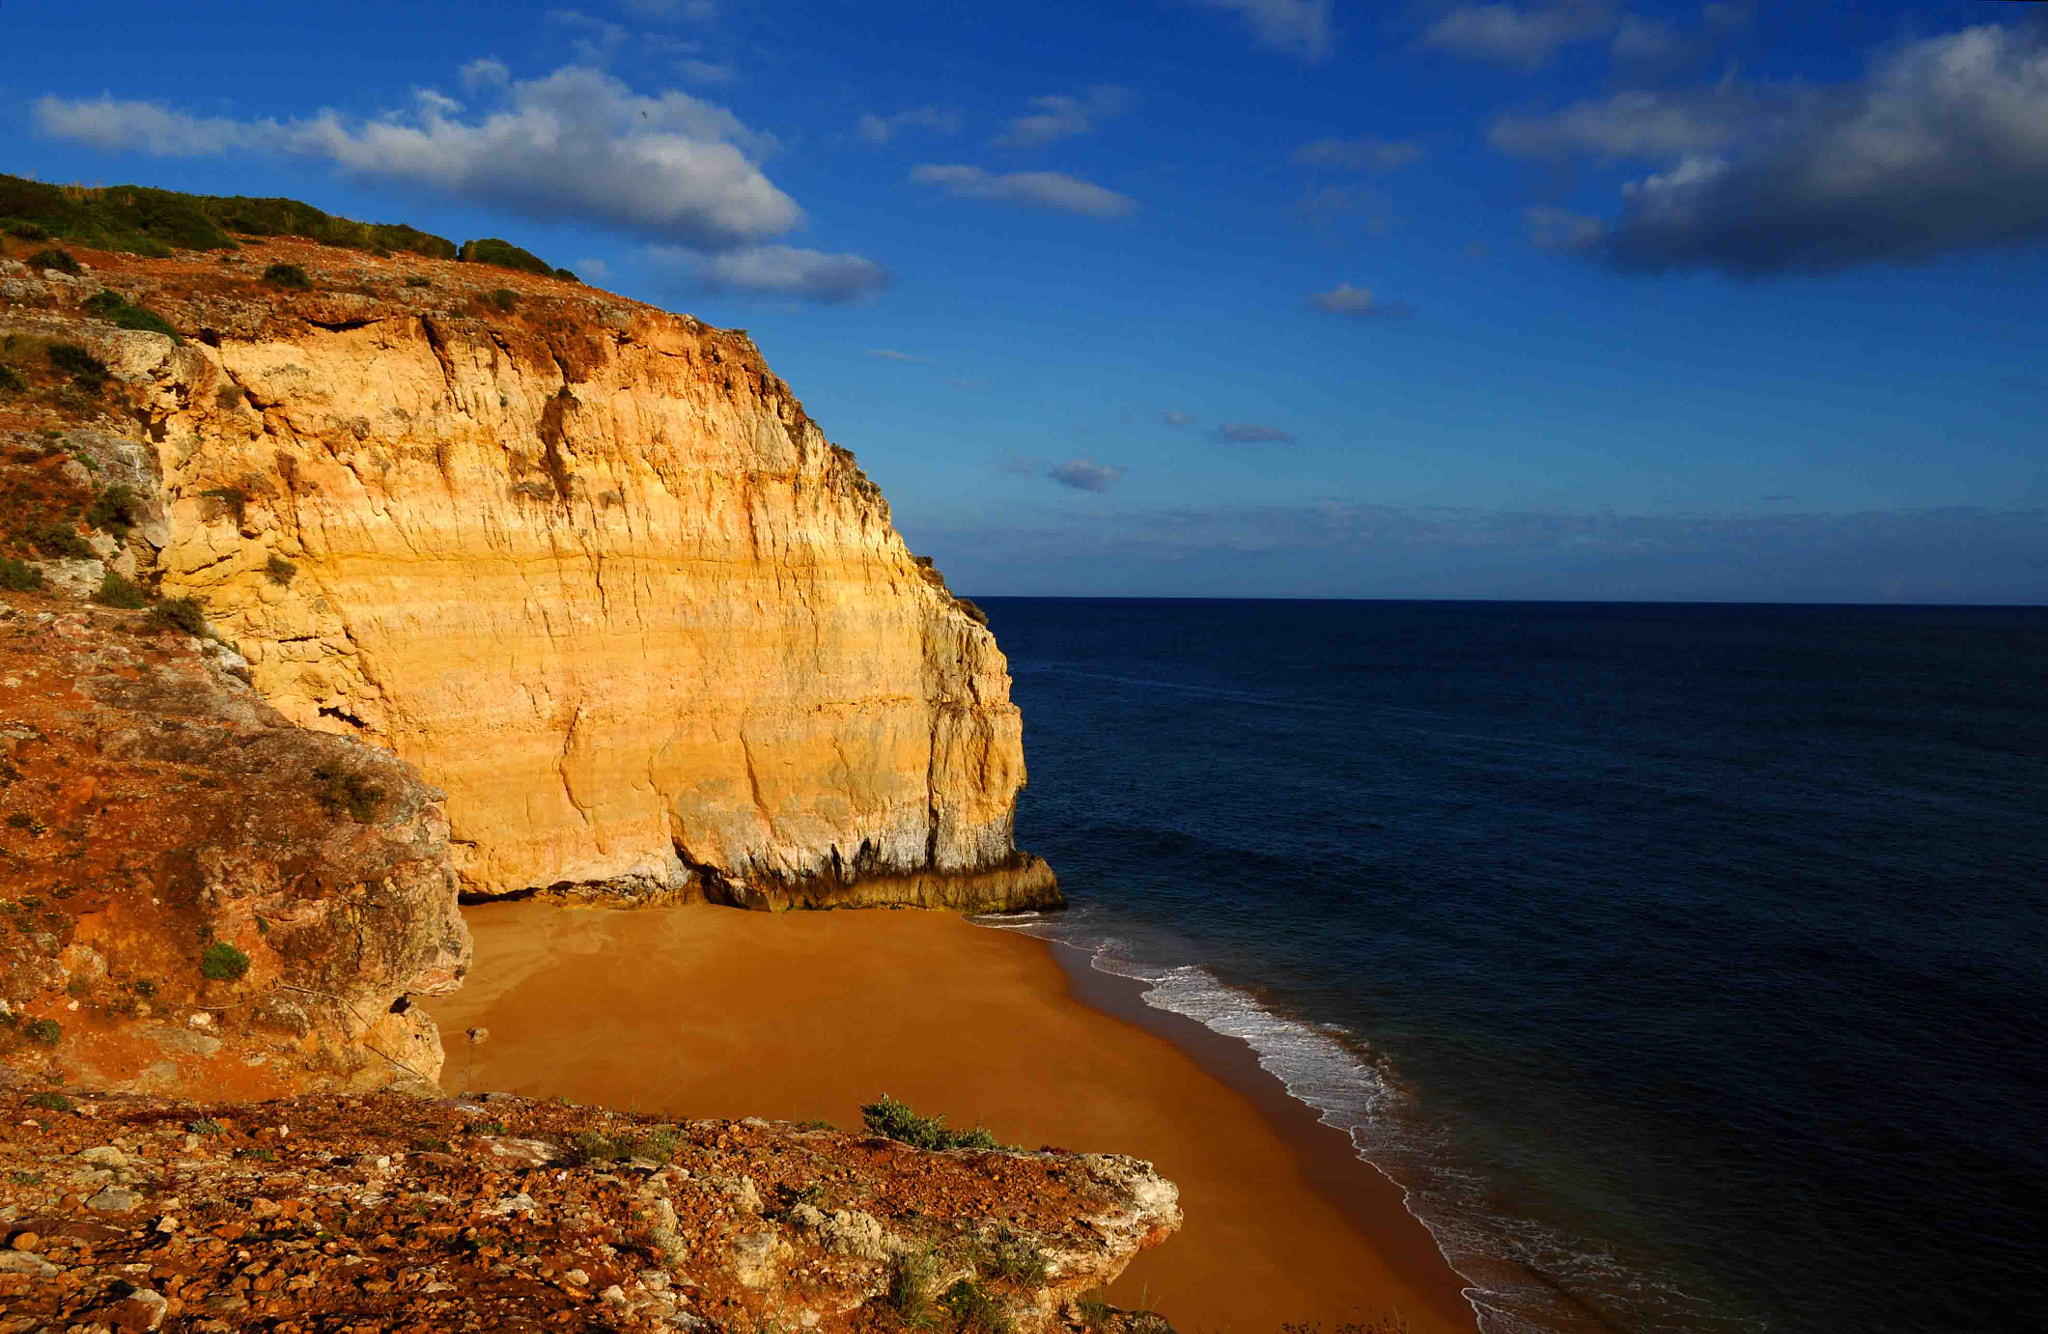 Photograph Beach between cliffs by José Eusébio on 500px